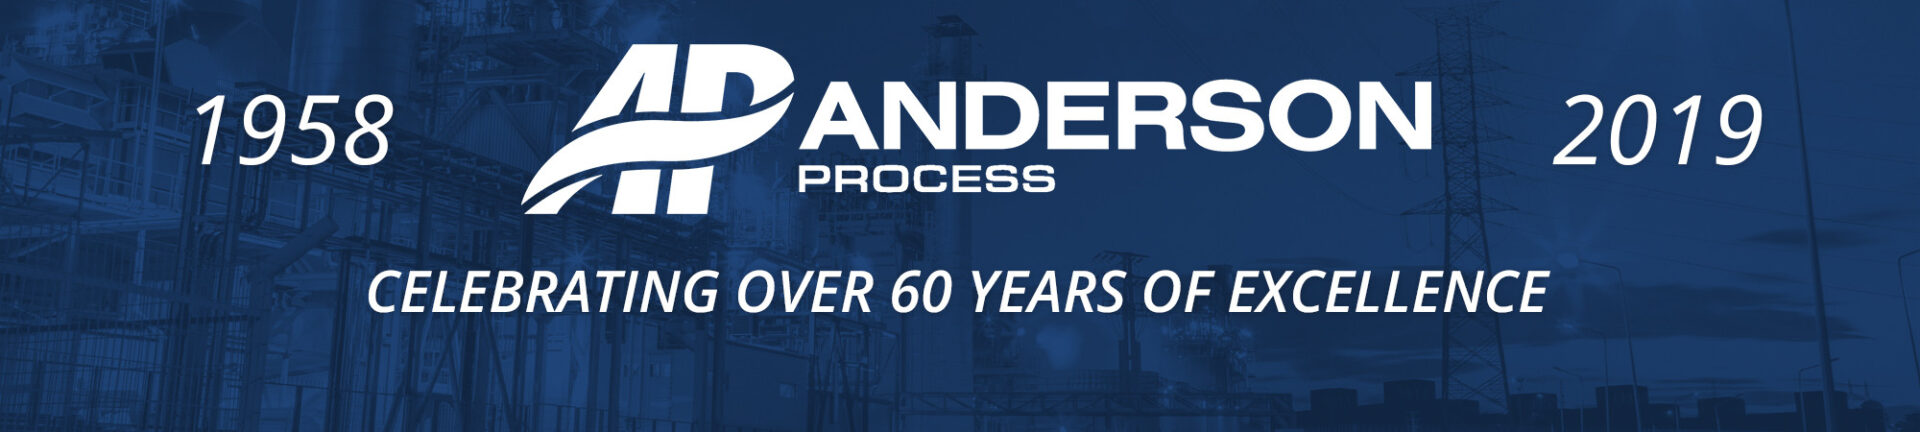 Celebrating 60 Years of Excellence